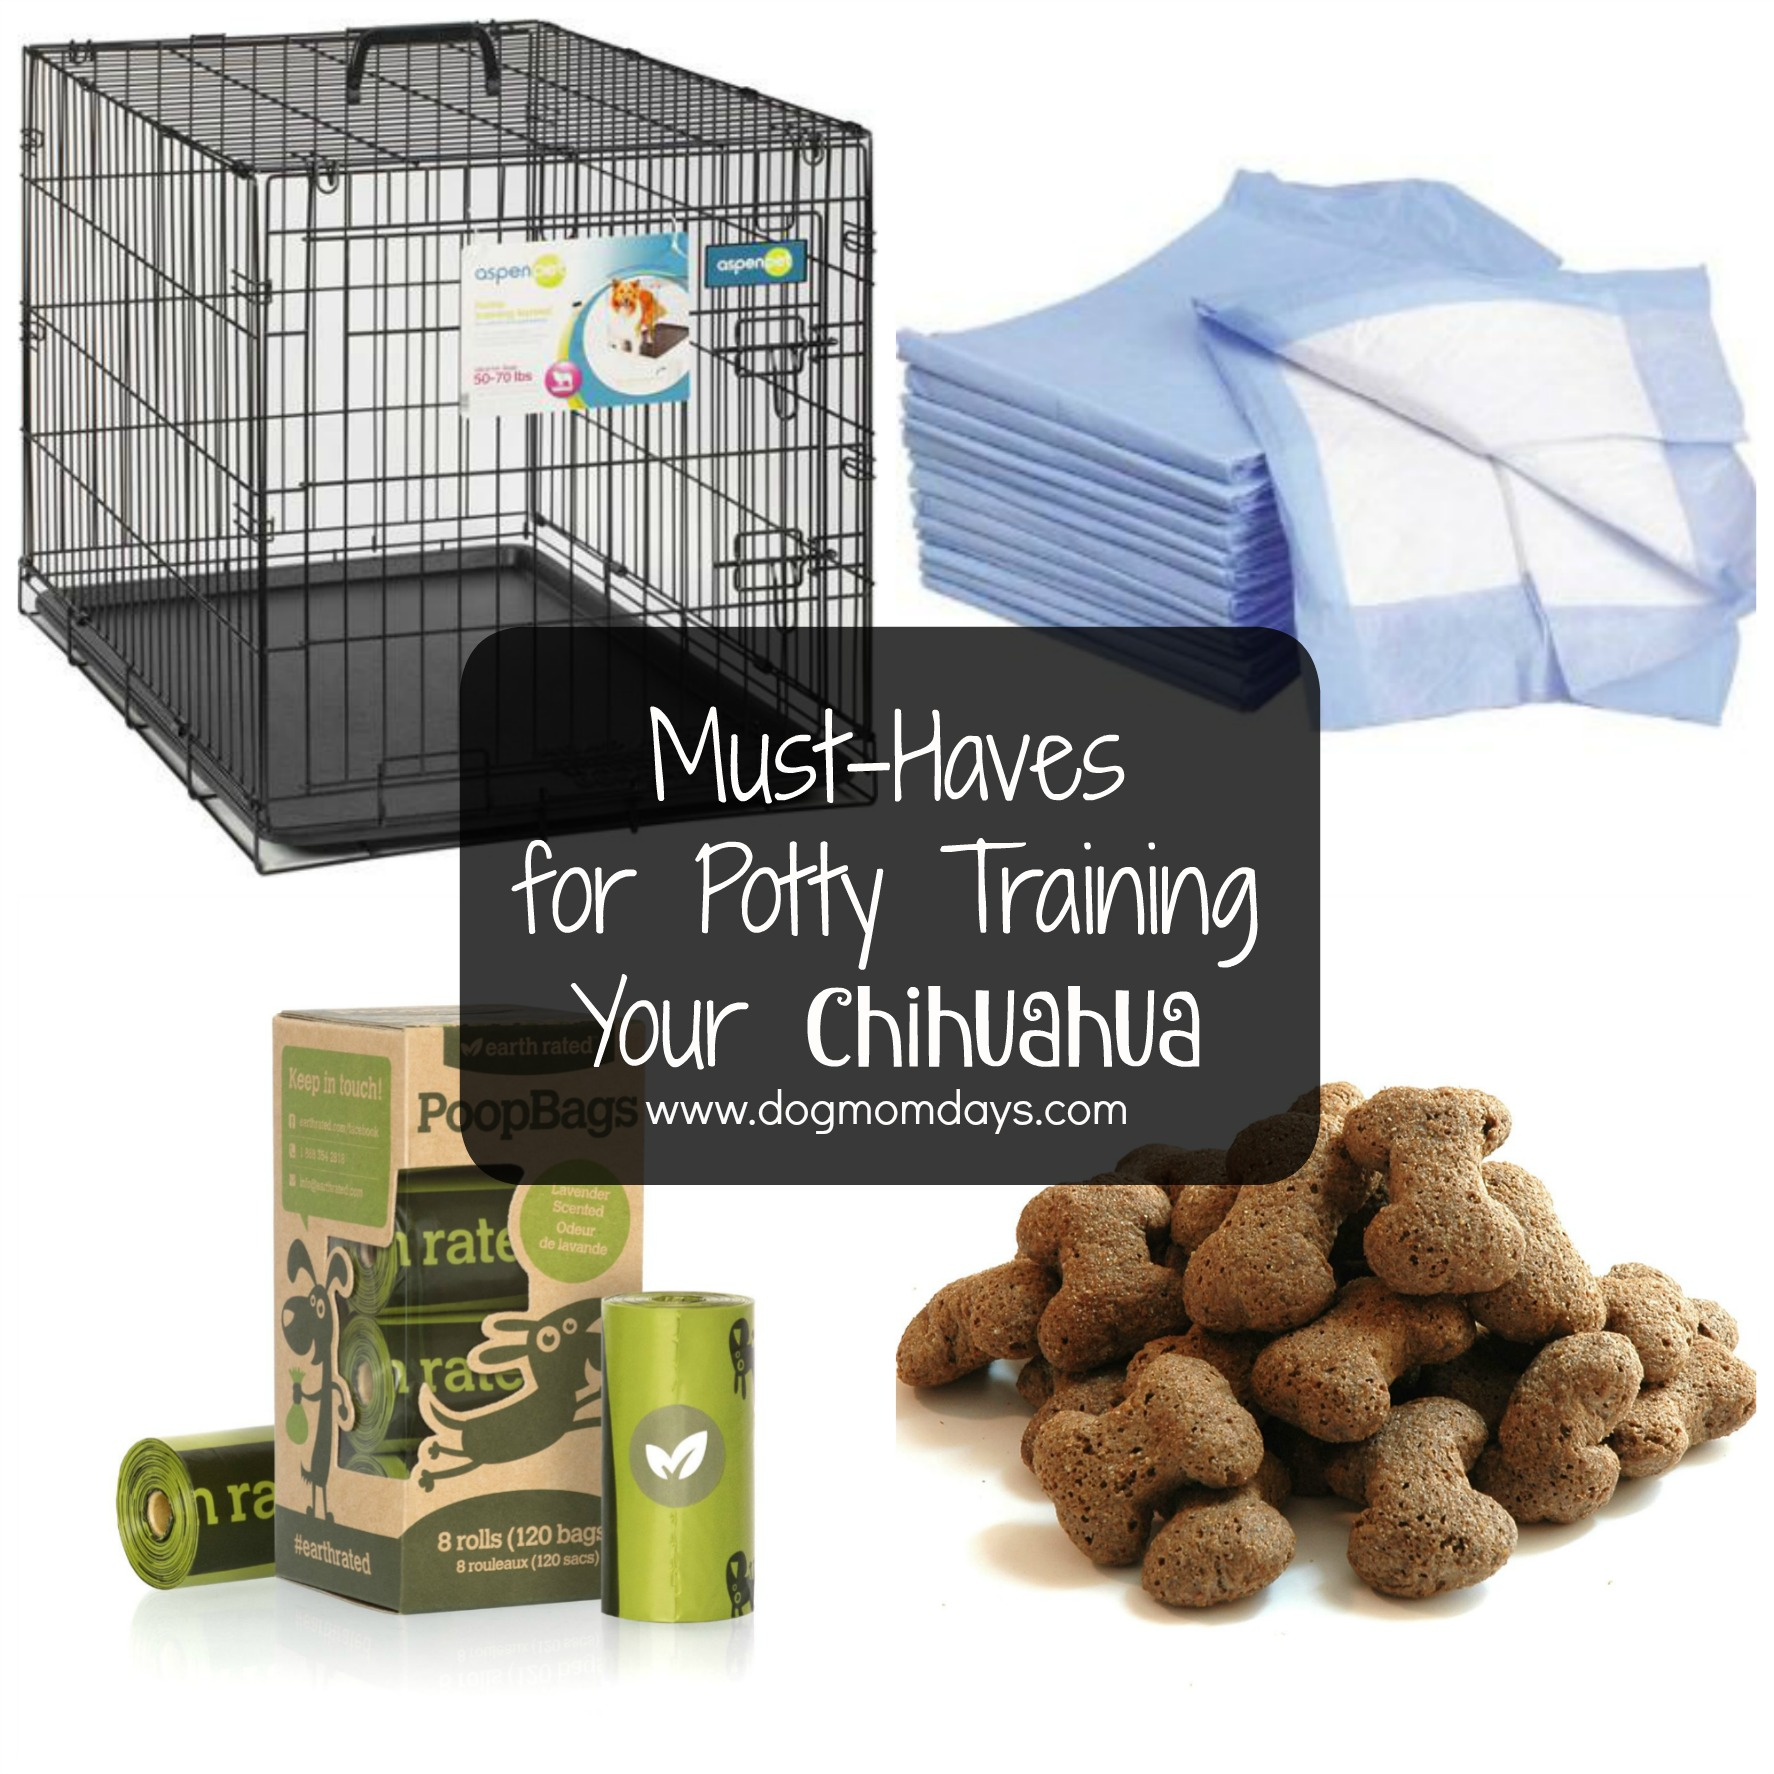 10 Tips for Effectively Potty Training Your Chihuahua